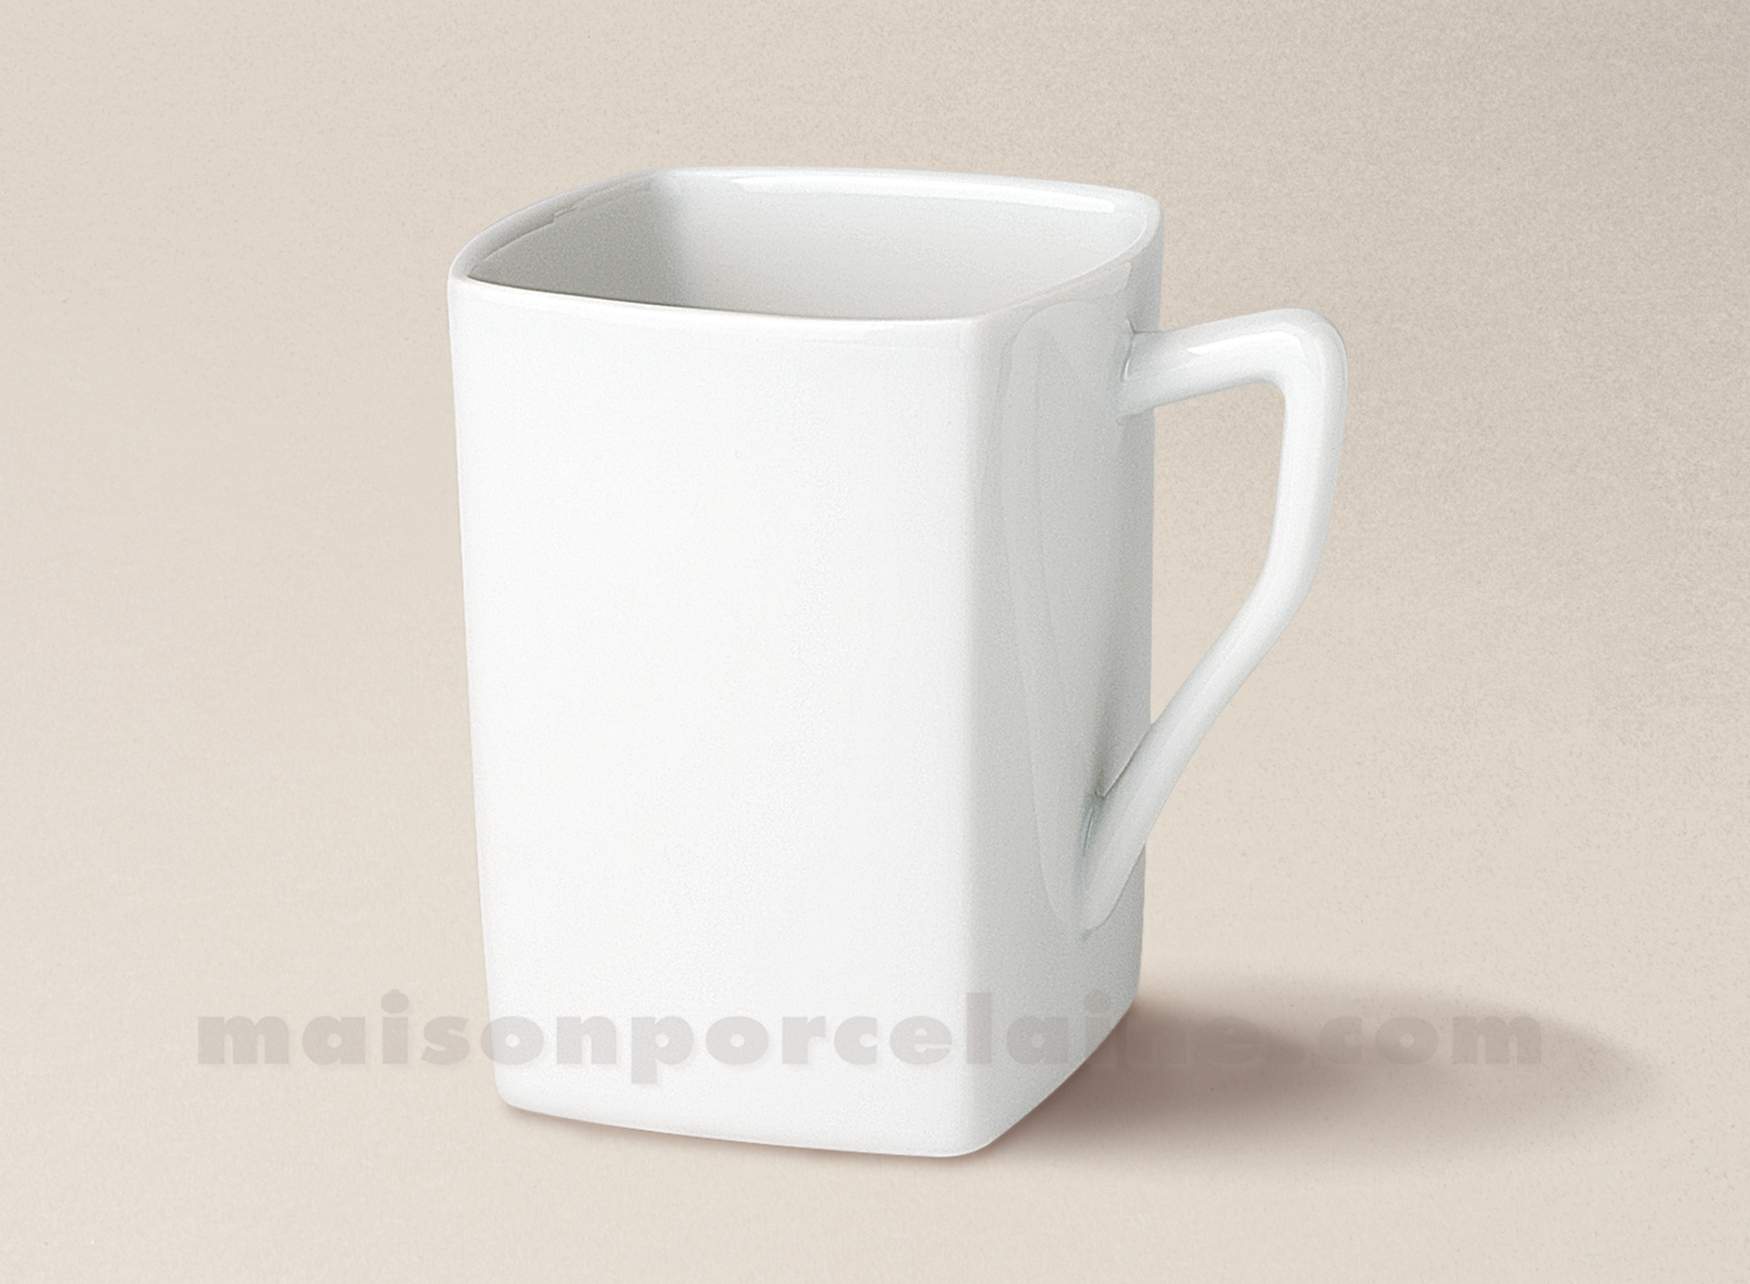 mug porcelaine blanche limoges carre 26cl maison de la porcelaine. Black Bedroom Furniture Sets. Home Design Ideas